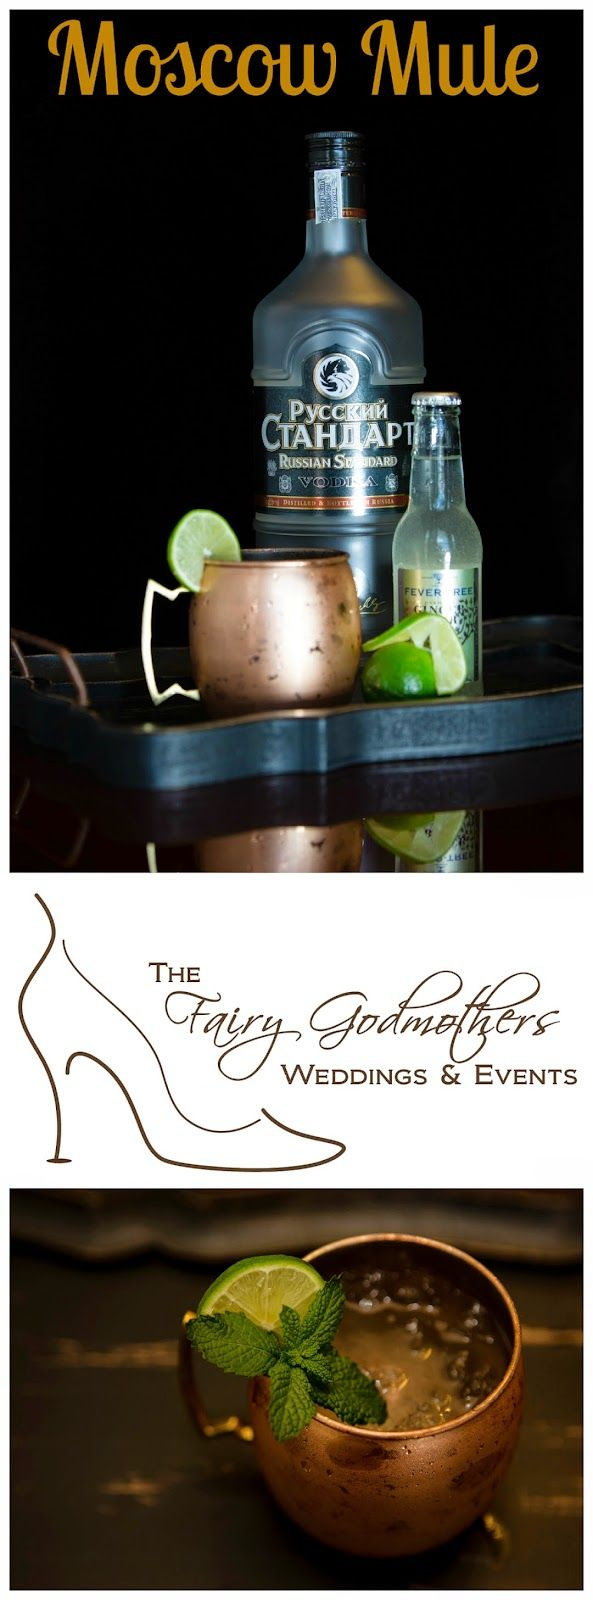 Fabulous FG Friday Cocktail: Moscow Mule - Signature Drink #signaturedrink #cocktail - Images by http://tworingsweddings.com/ - via Fairy Godmothers Weddings & Events